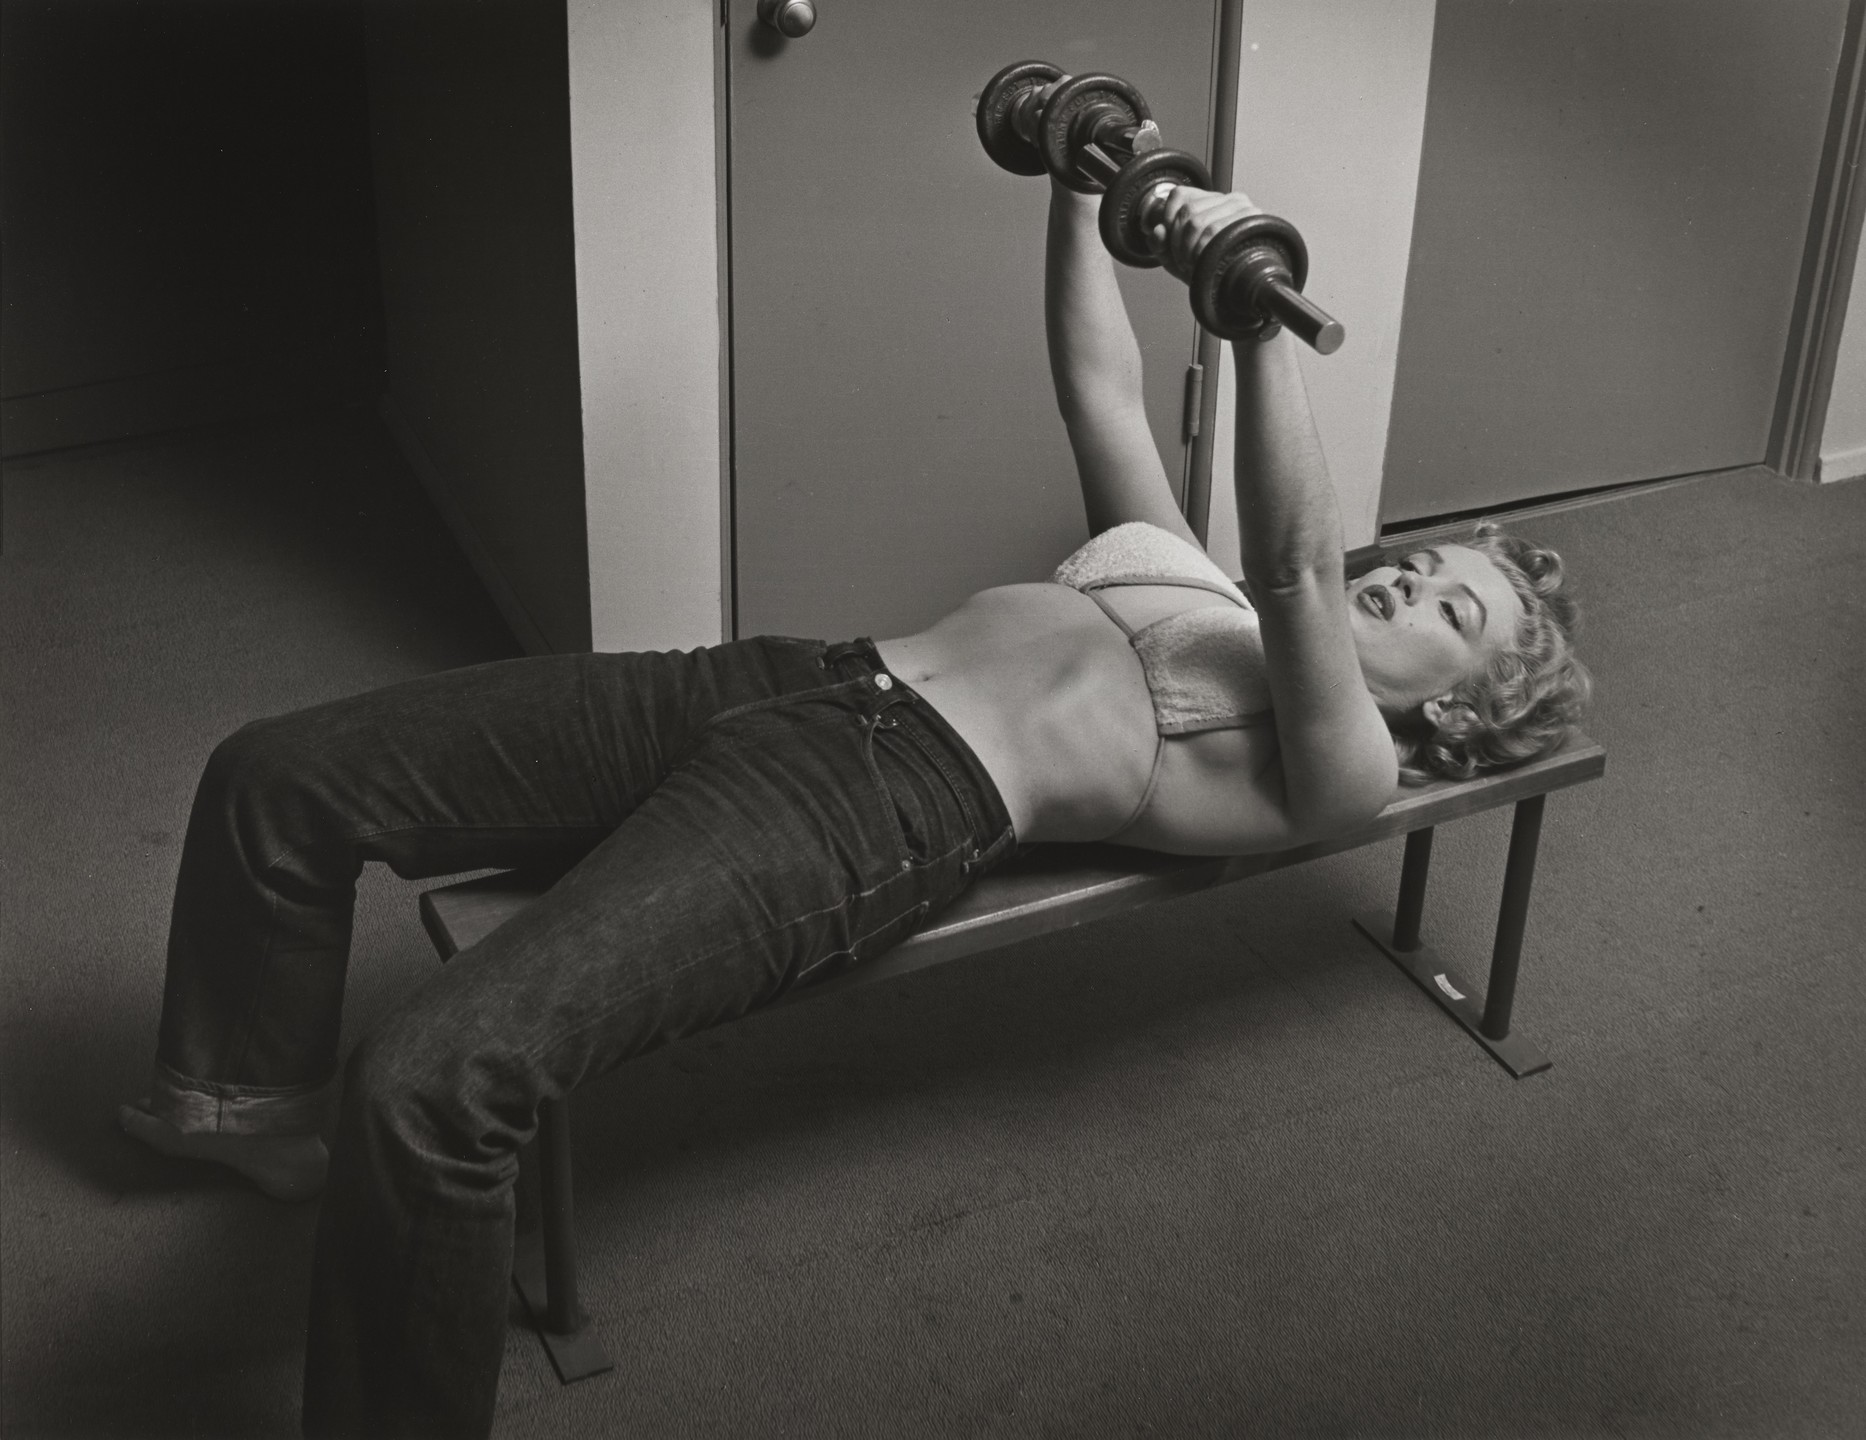 Philippe Halsman. Marilyn Monroe with Barbells. 1952 | MoMA